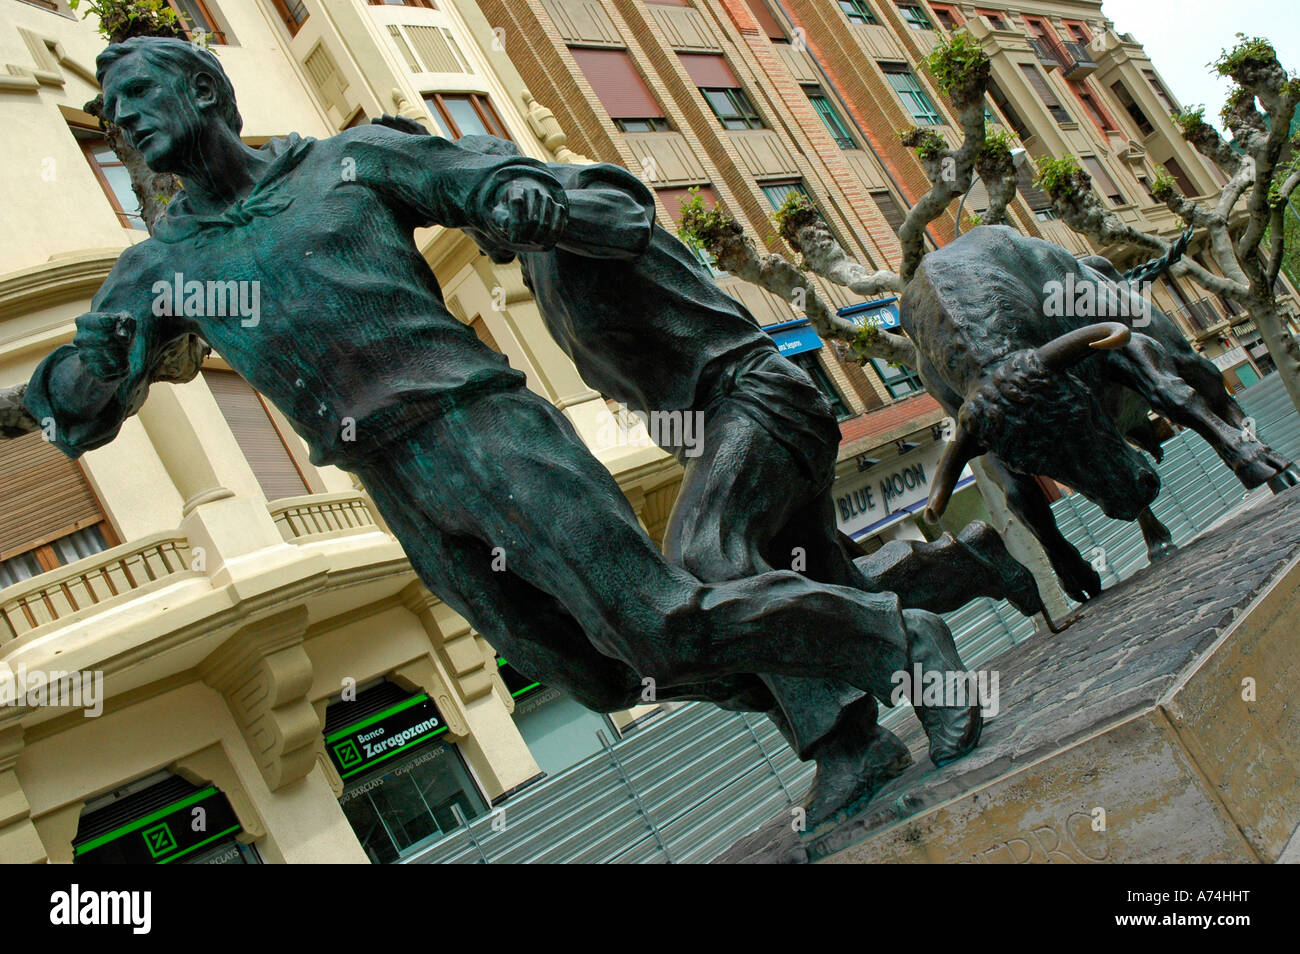 Monument to the confinements of San Fermin PAMPLONA Navarre Spain Stock Photo